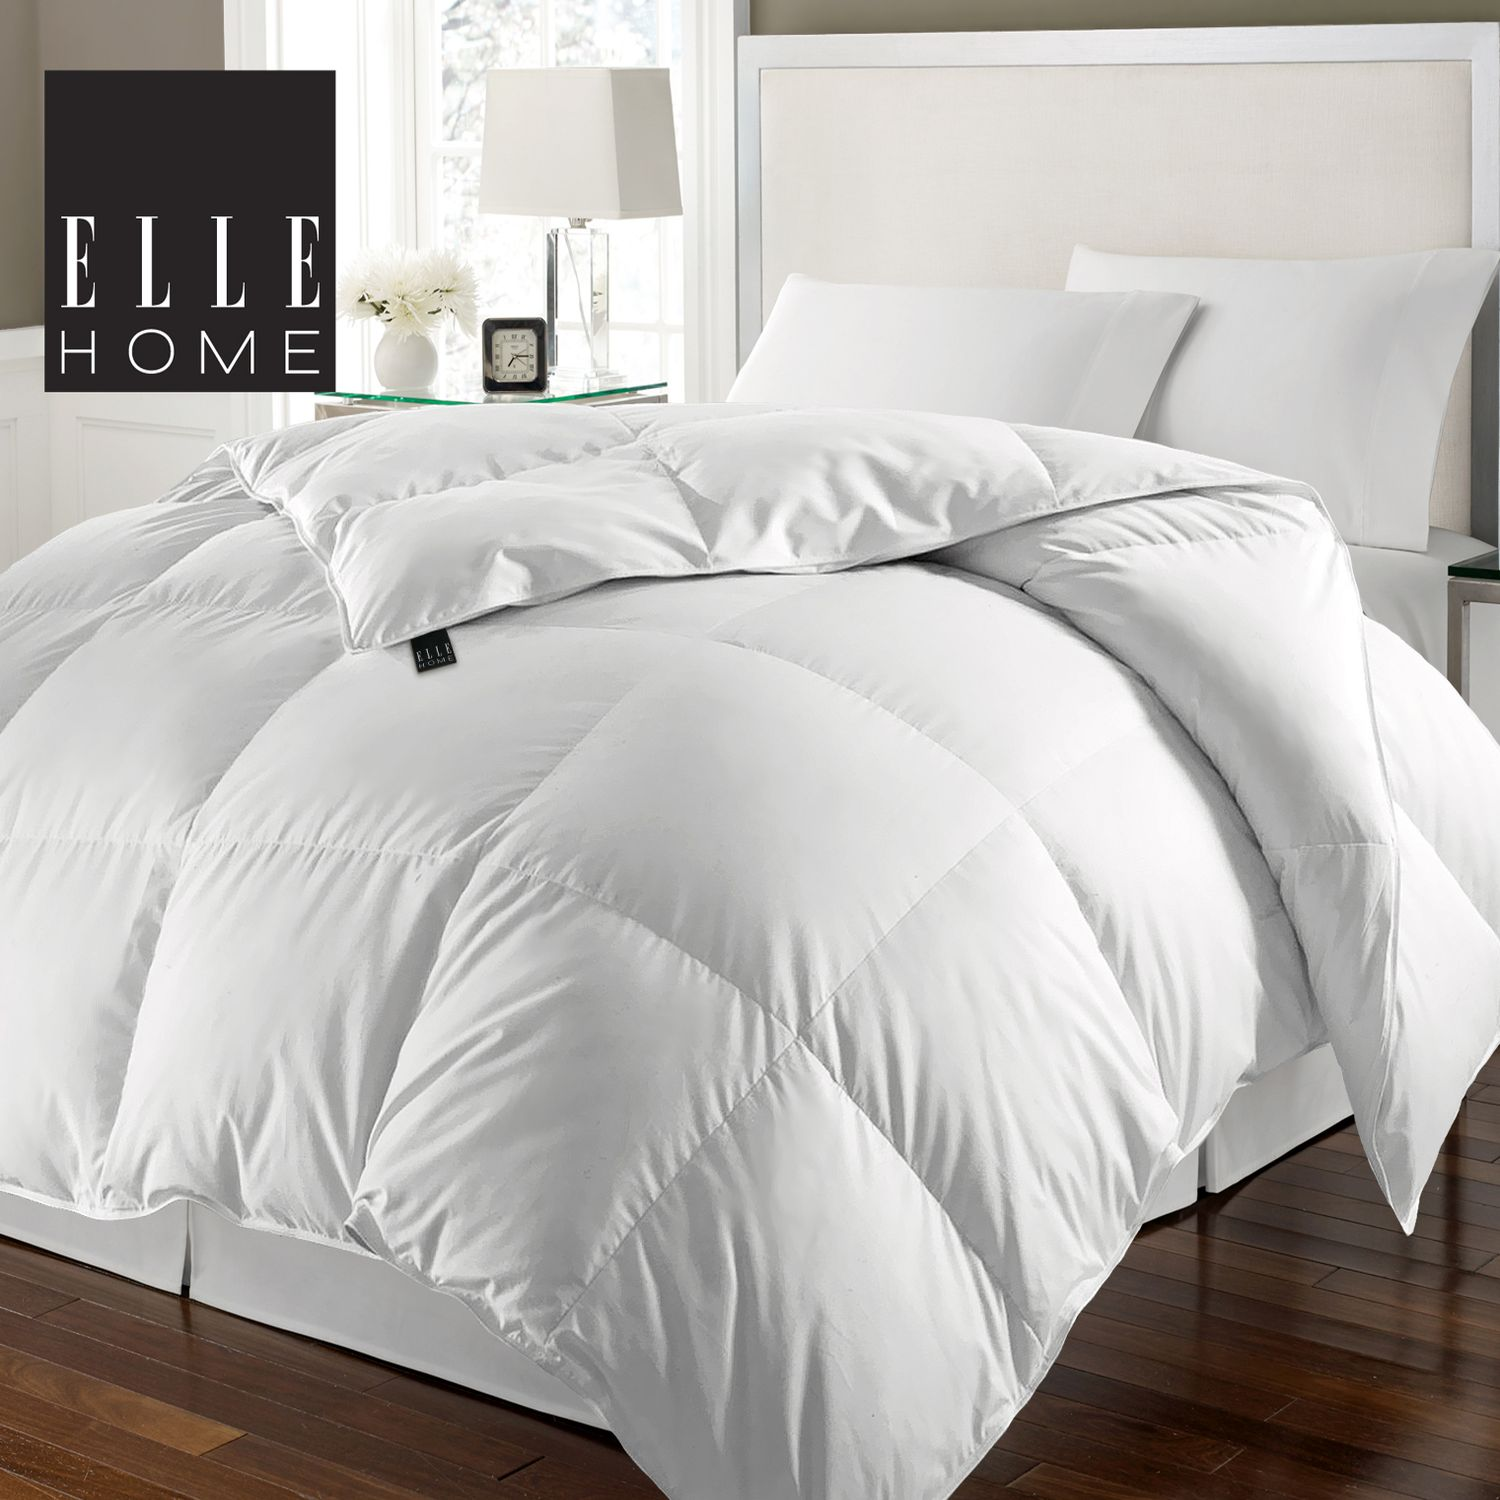 240 Thread Count Cotton Solid Cover White Goose Feather And Goose Down Comforter Ebay